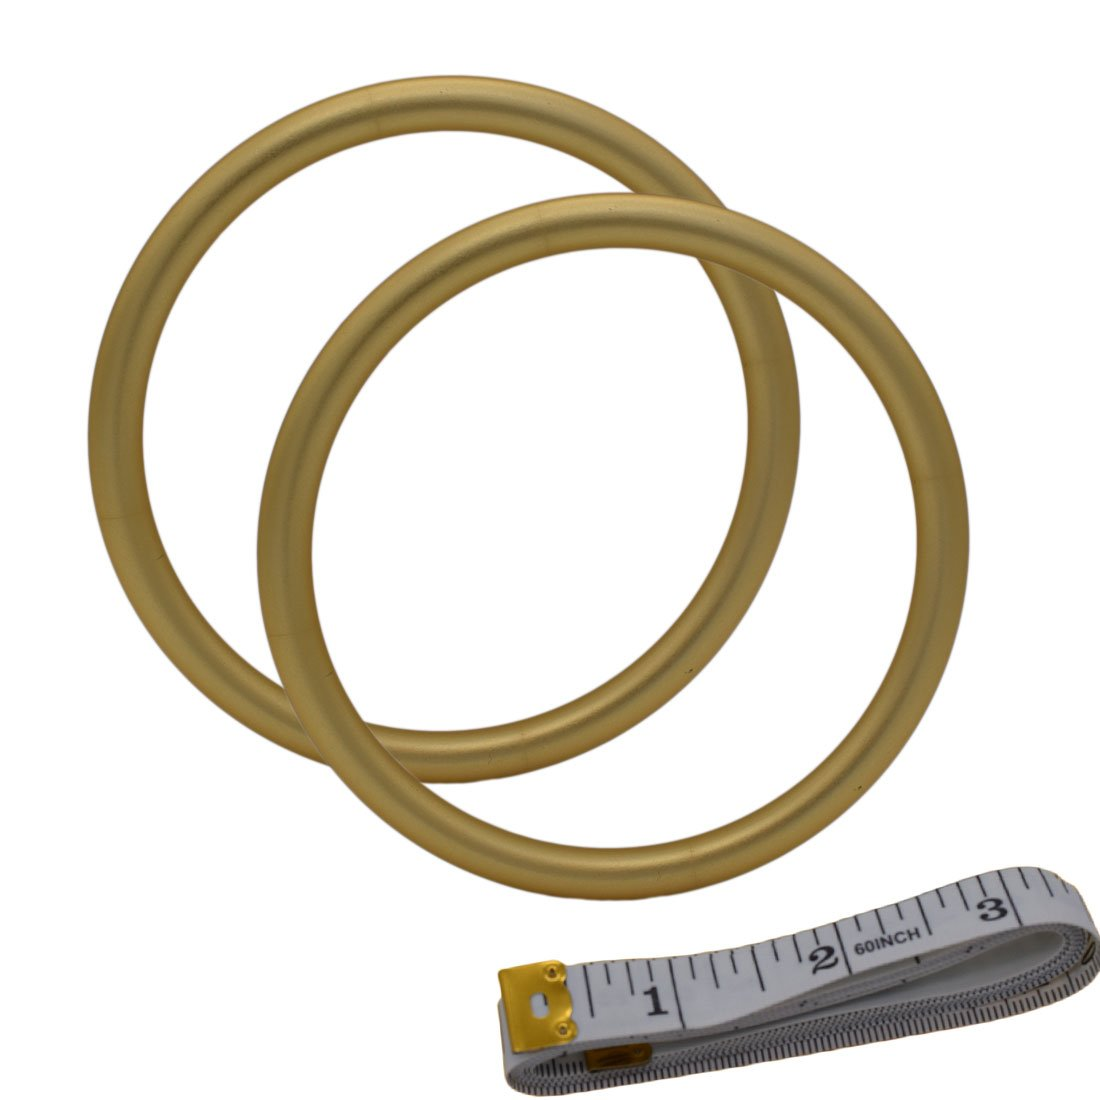 UNISOAR Aluminium Baby Sling Rings for Baby Carriers & Slings 3'' Large Size Gold Color 1 pair with gift